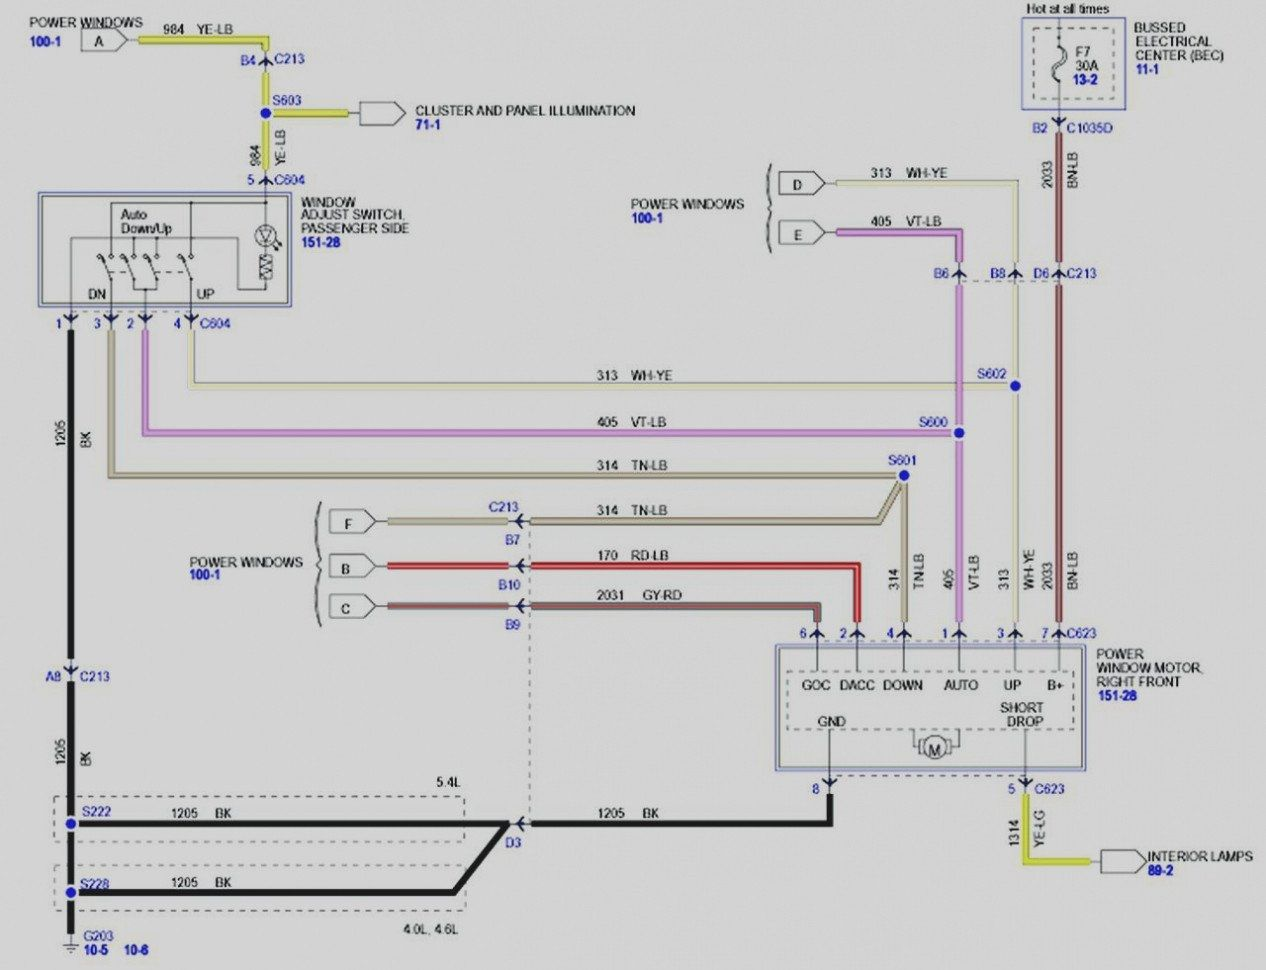 Shaker 500 Stereo Wiring Diagram - Hollow Body Bass Guitar Wiring Diagram -  valkyrie.lalu.decorresine.itWiring Diagram Resource